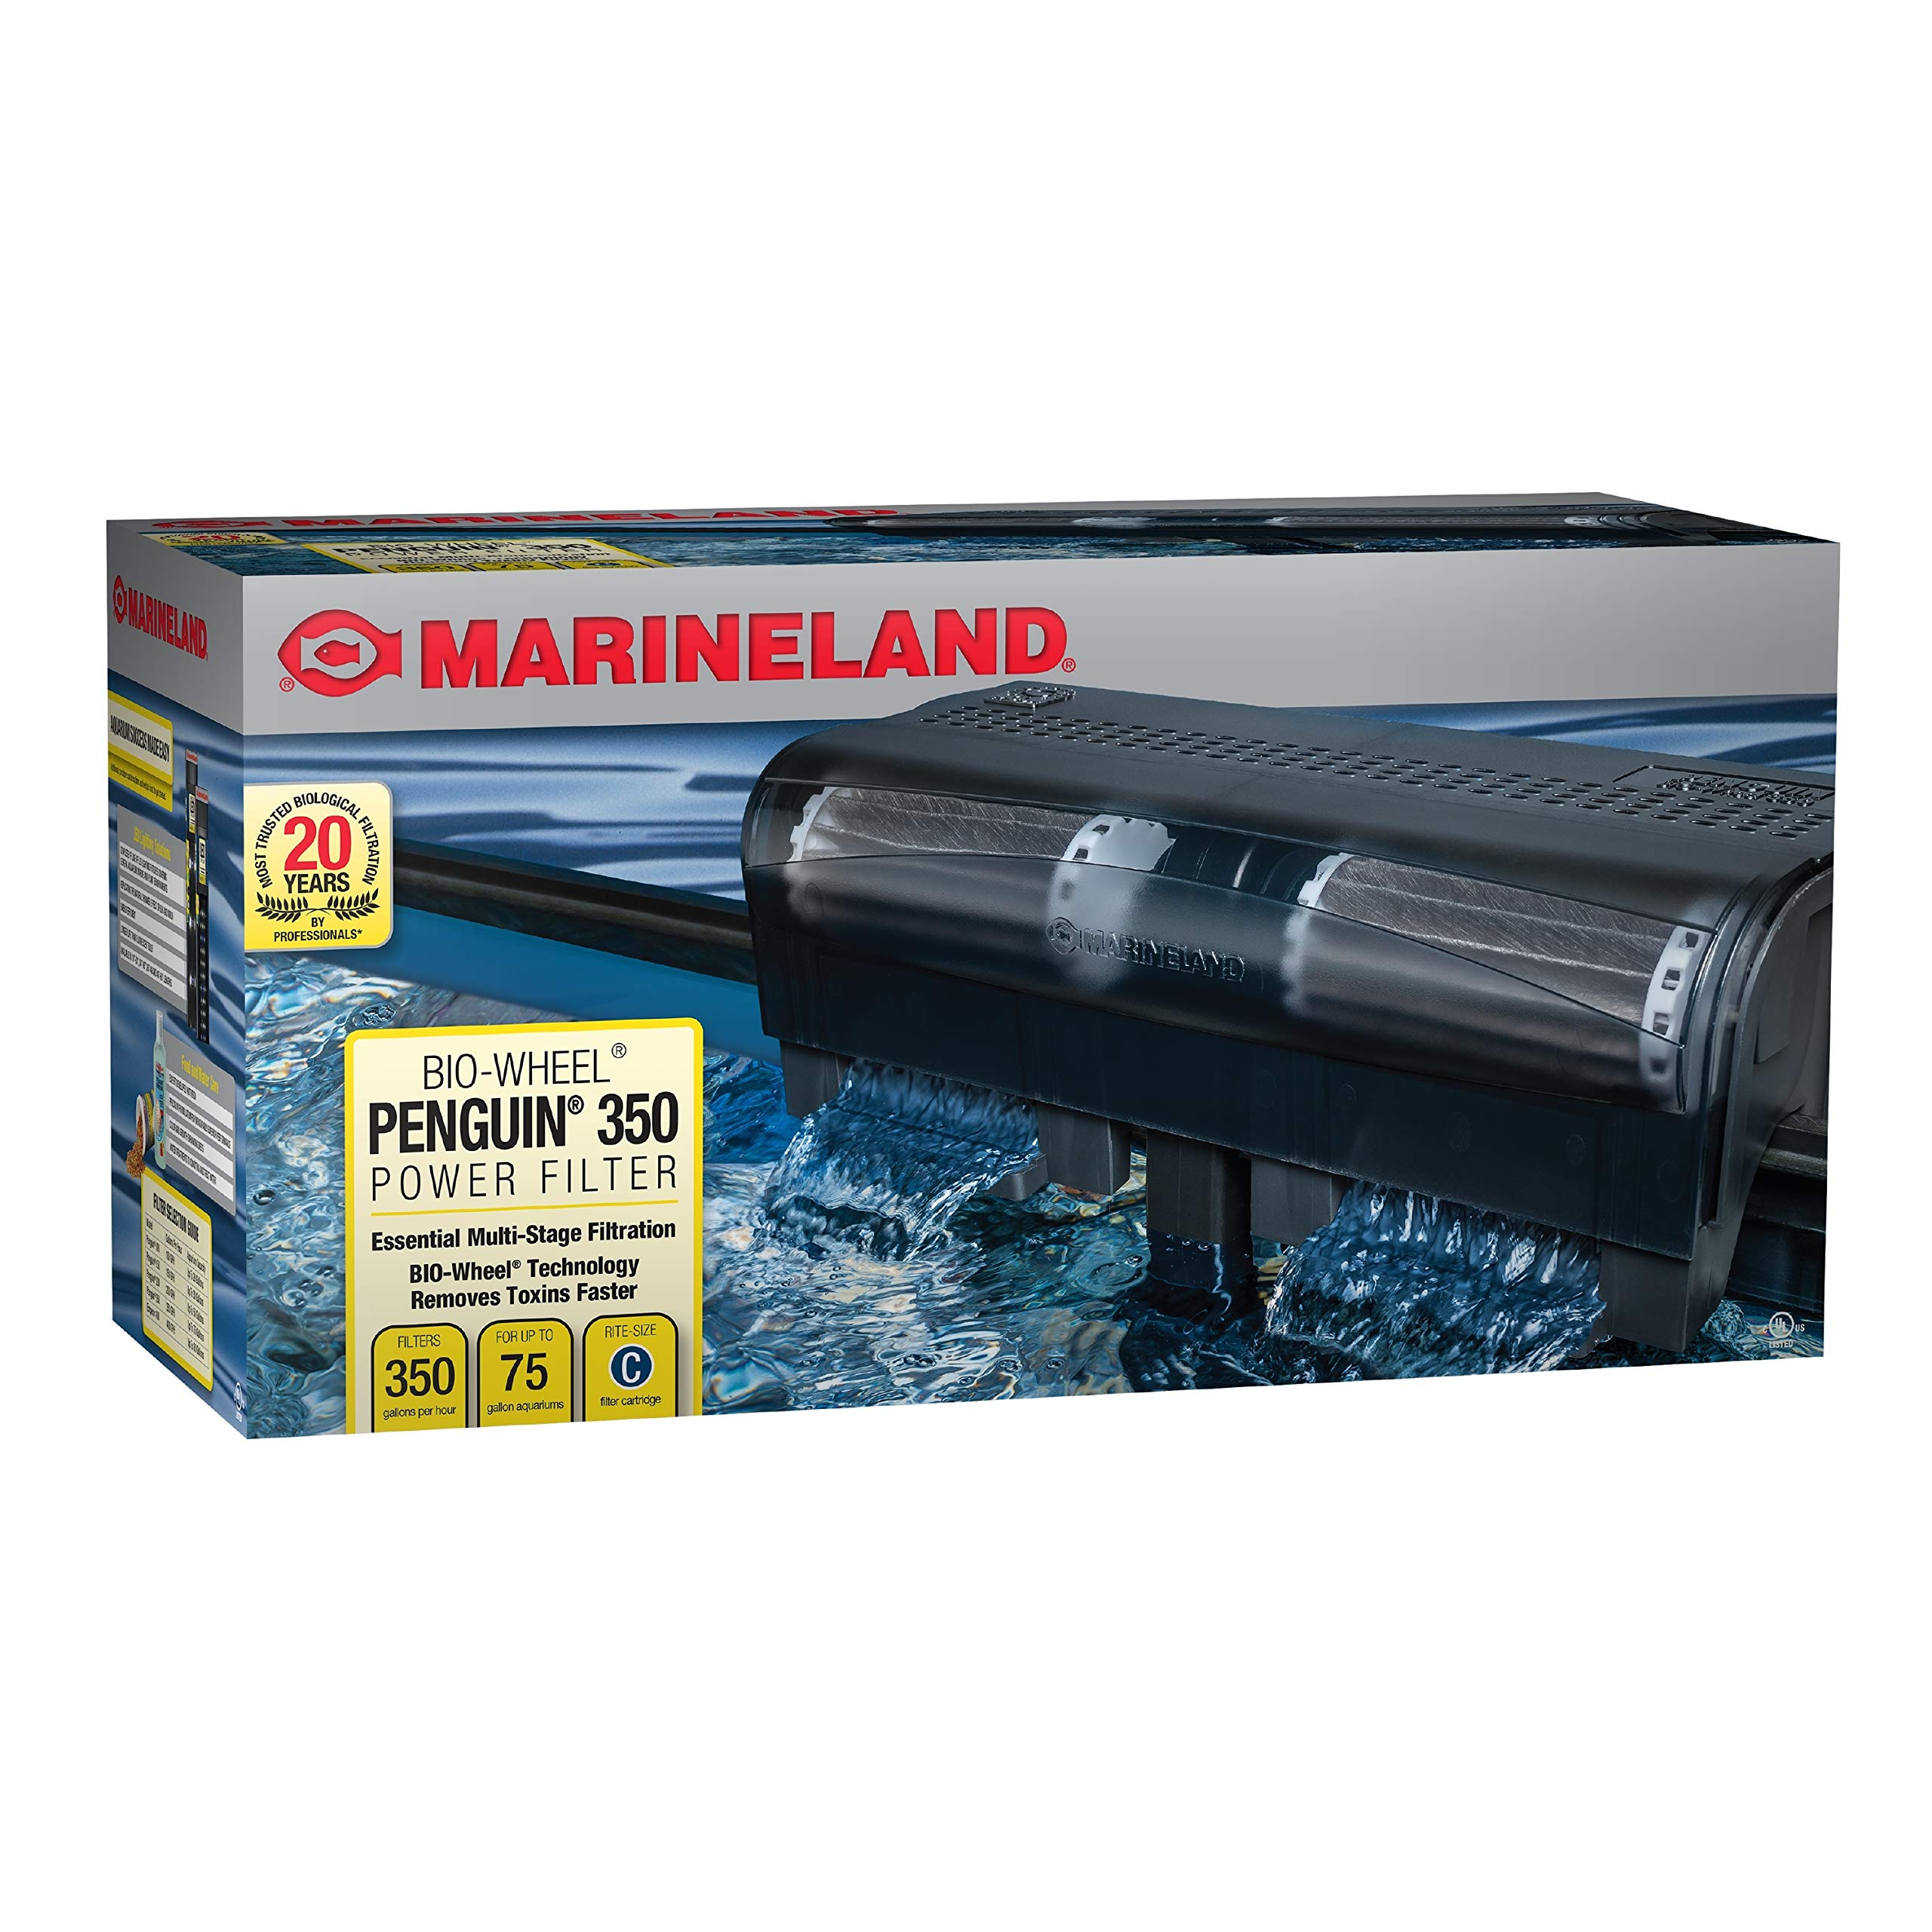 Marineland Penguin Power Filter, 50 to 70-Gallon, 350 GPH by MarineLand